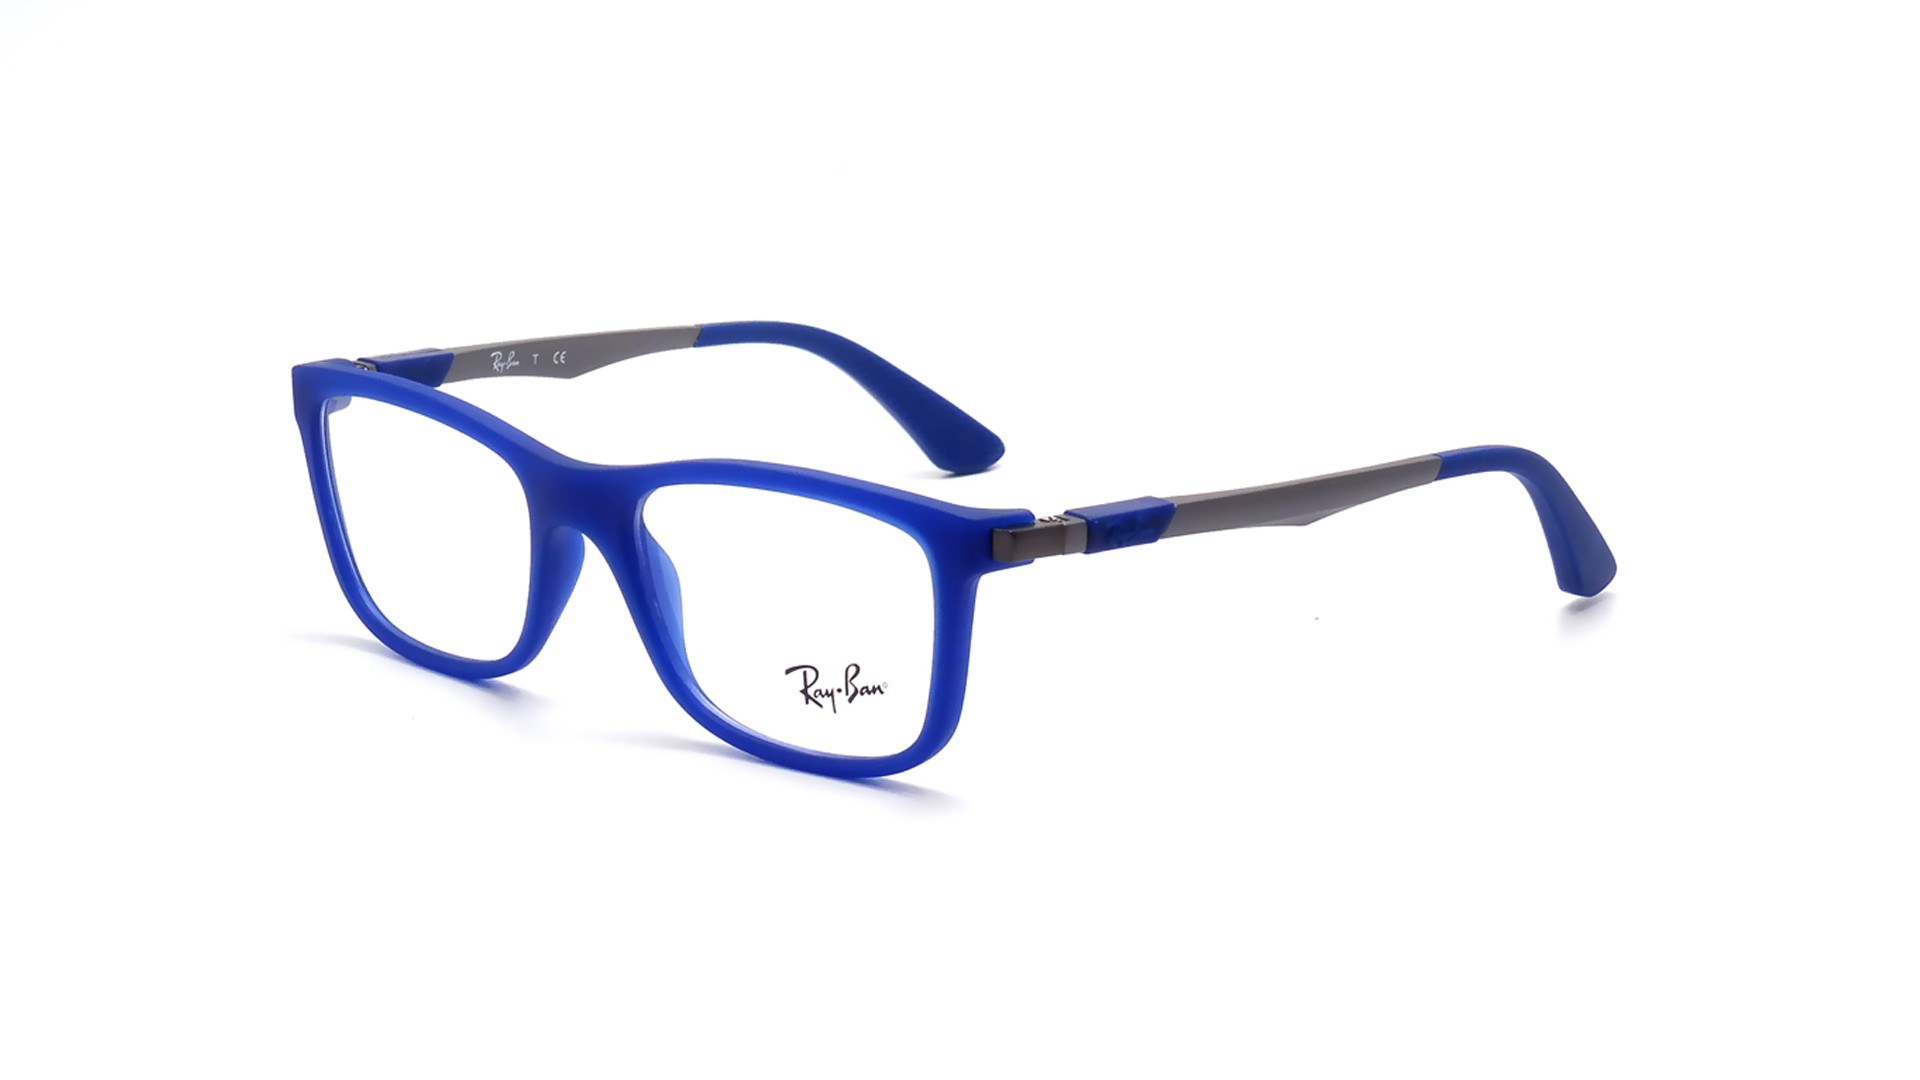 lunettes de vue ray ban ryrb1549 3655 48 16 bleu prix 60 90 visiofactory. Black Bedroom Furniture Sets. Home Design Ideas